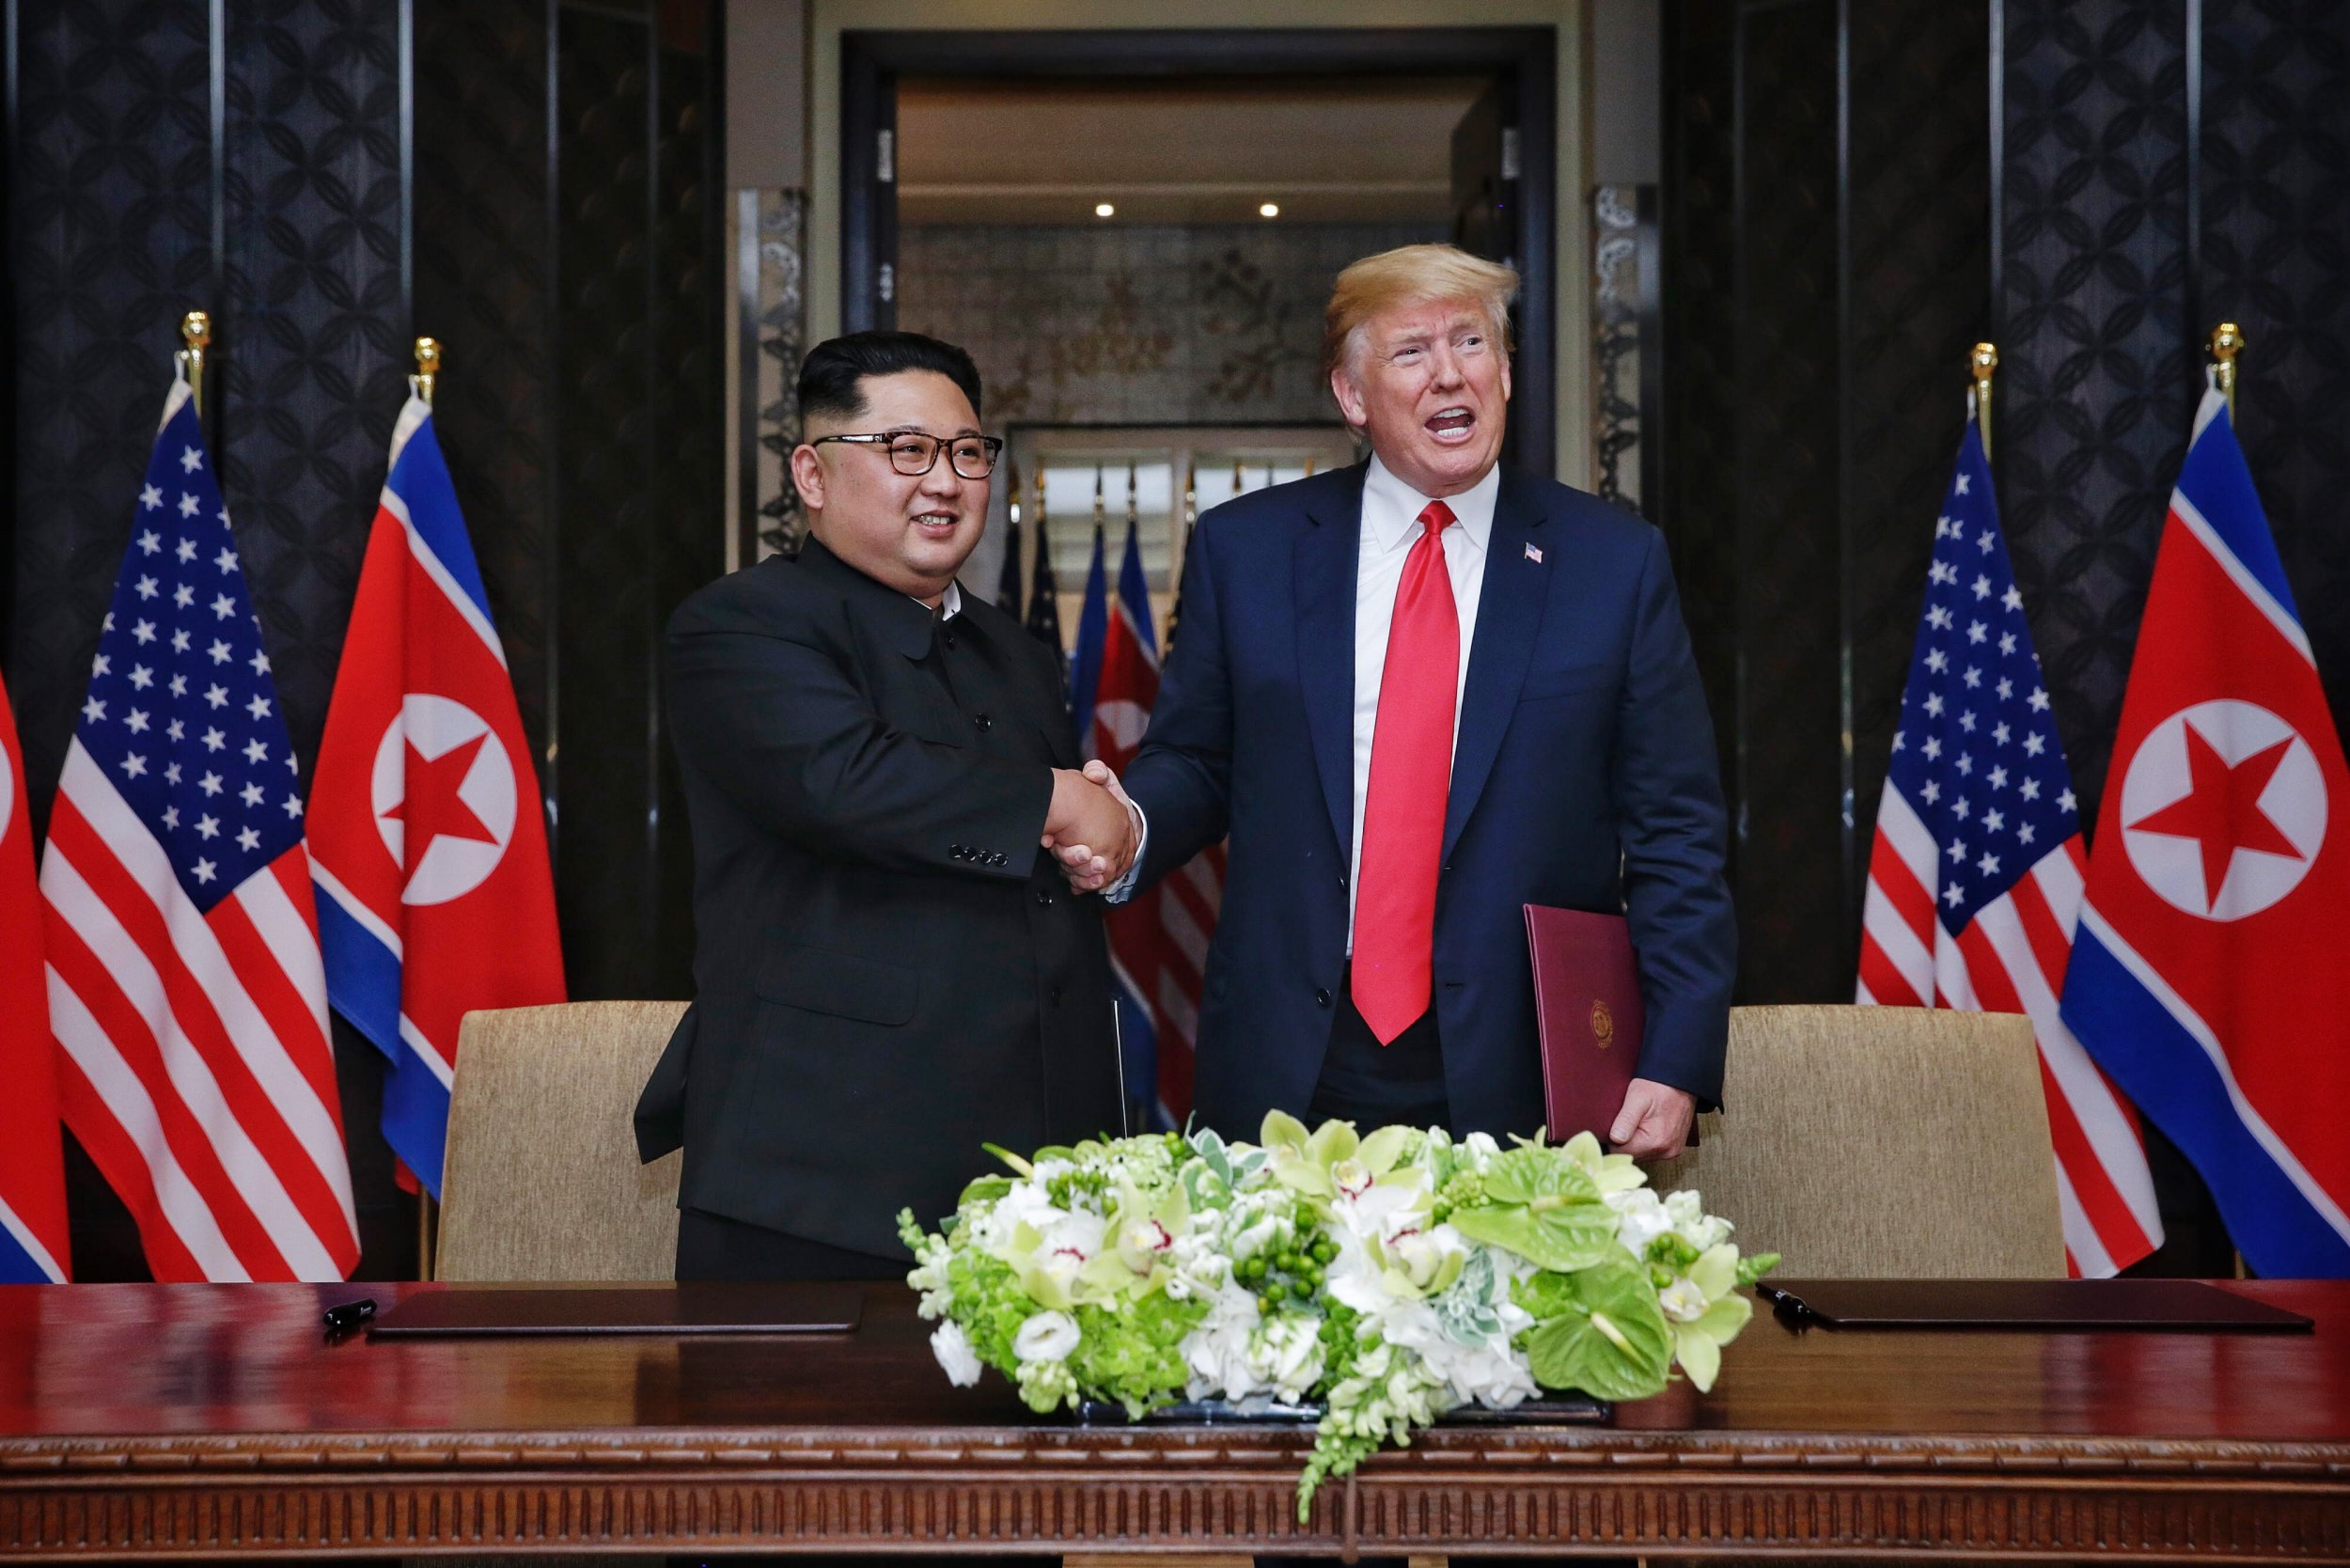 Donald Trump's Nobel Peace Prize Candidacy Endorsed by Norwegian Lawmakers Citing 'Huge and Important' North Korea Meeting